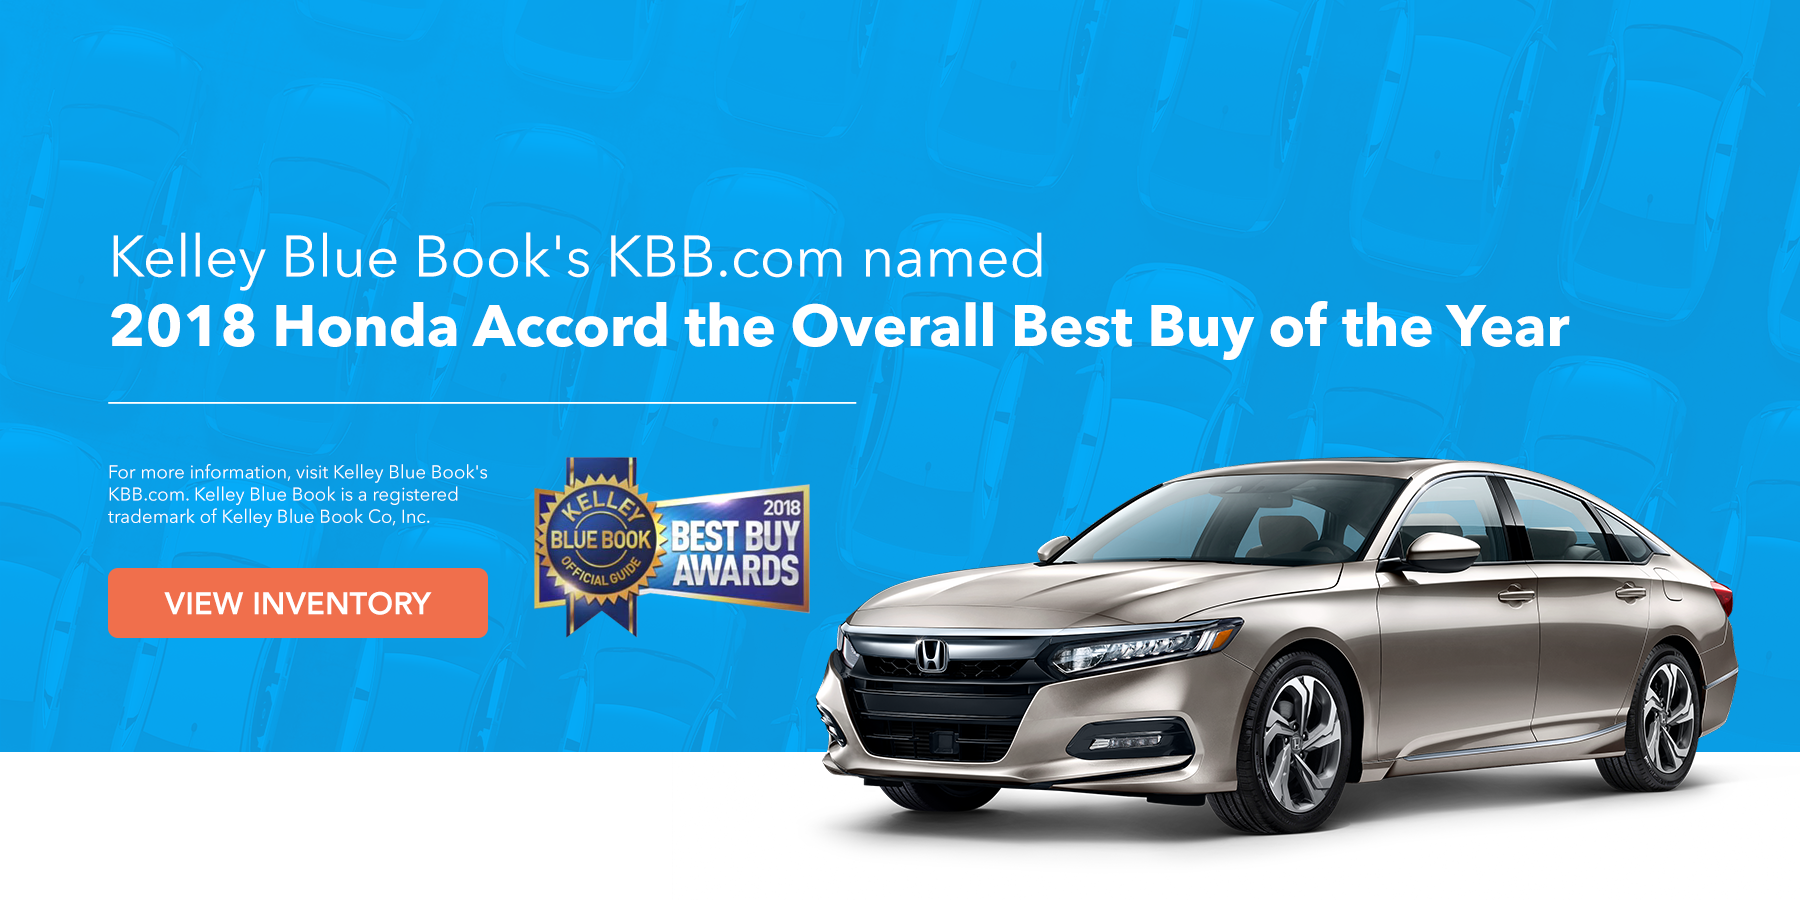 Jeffrey Honda 2018 Accord KBB Award